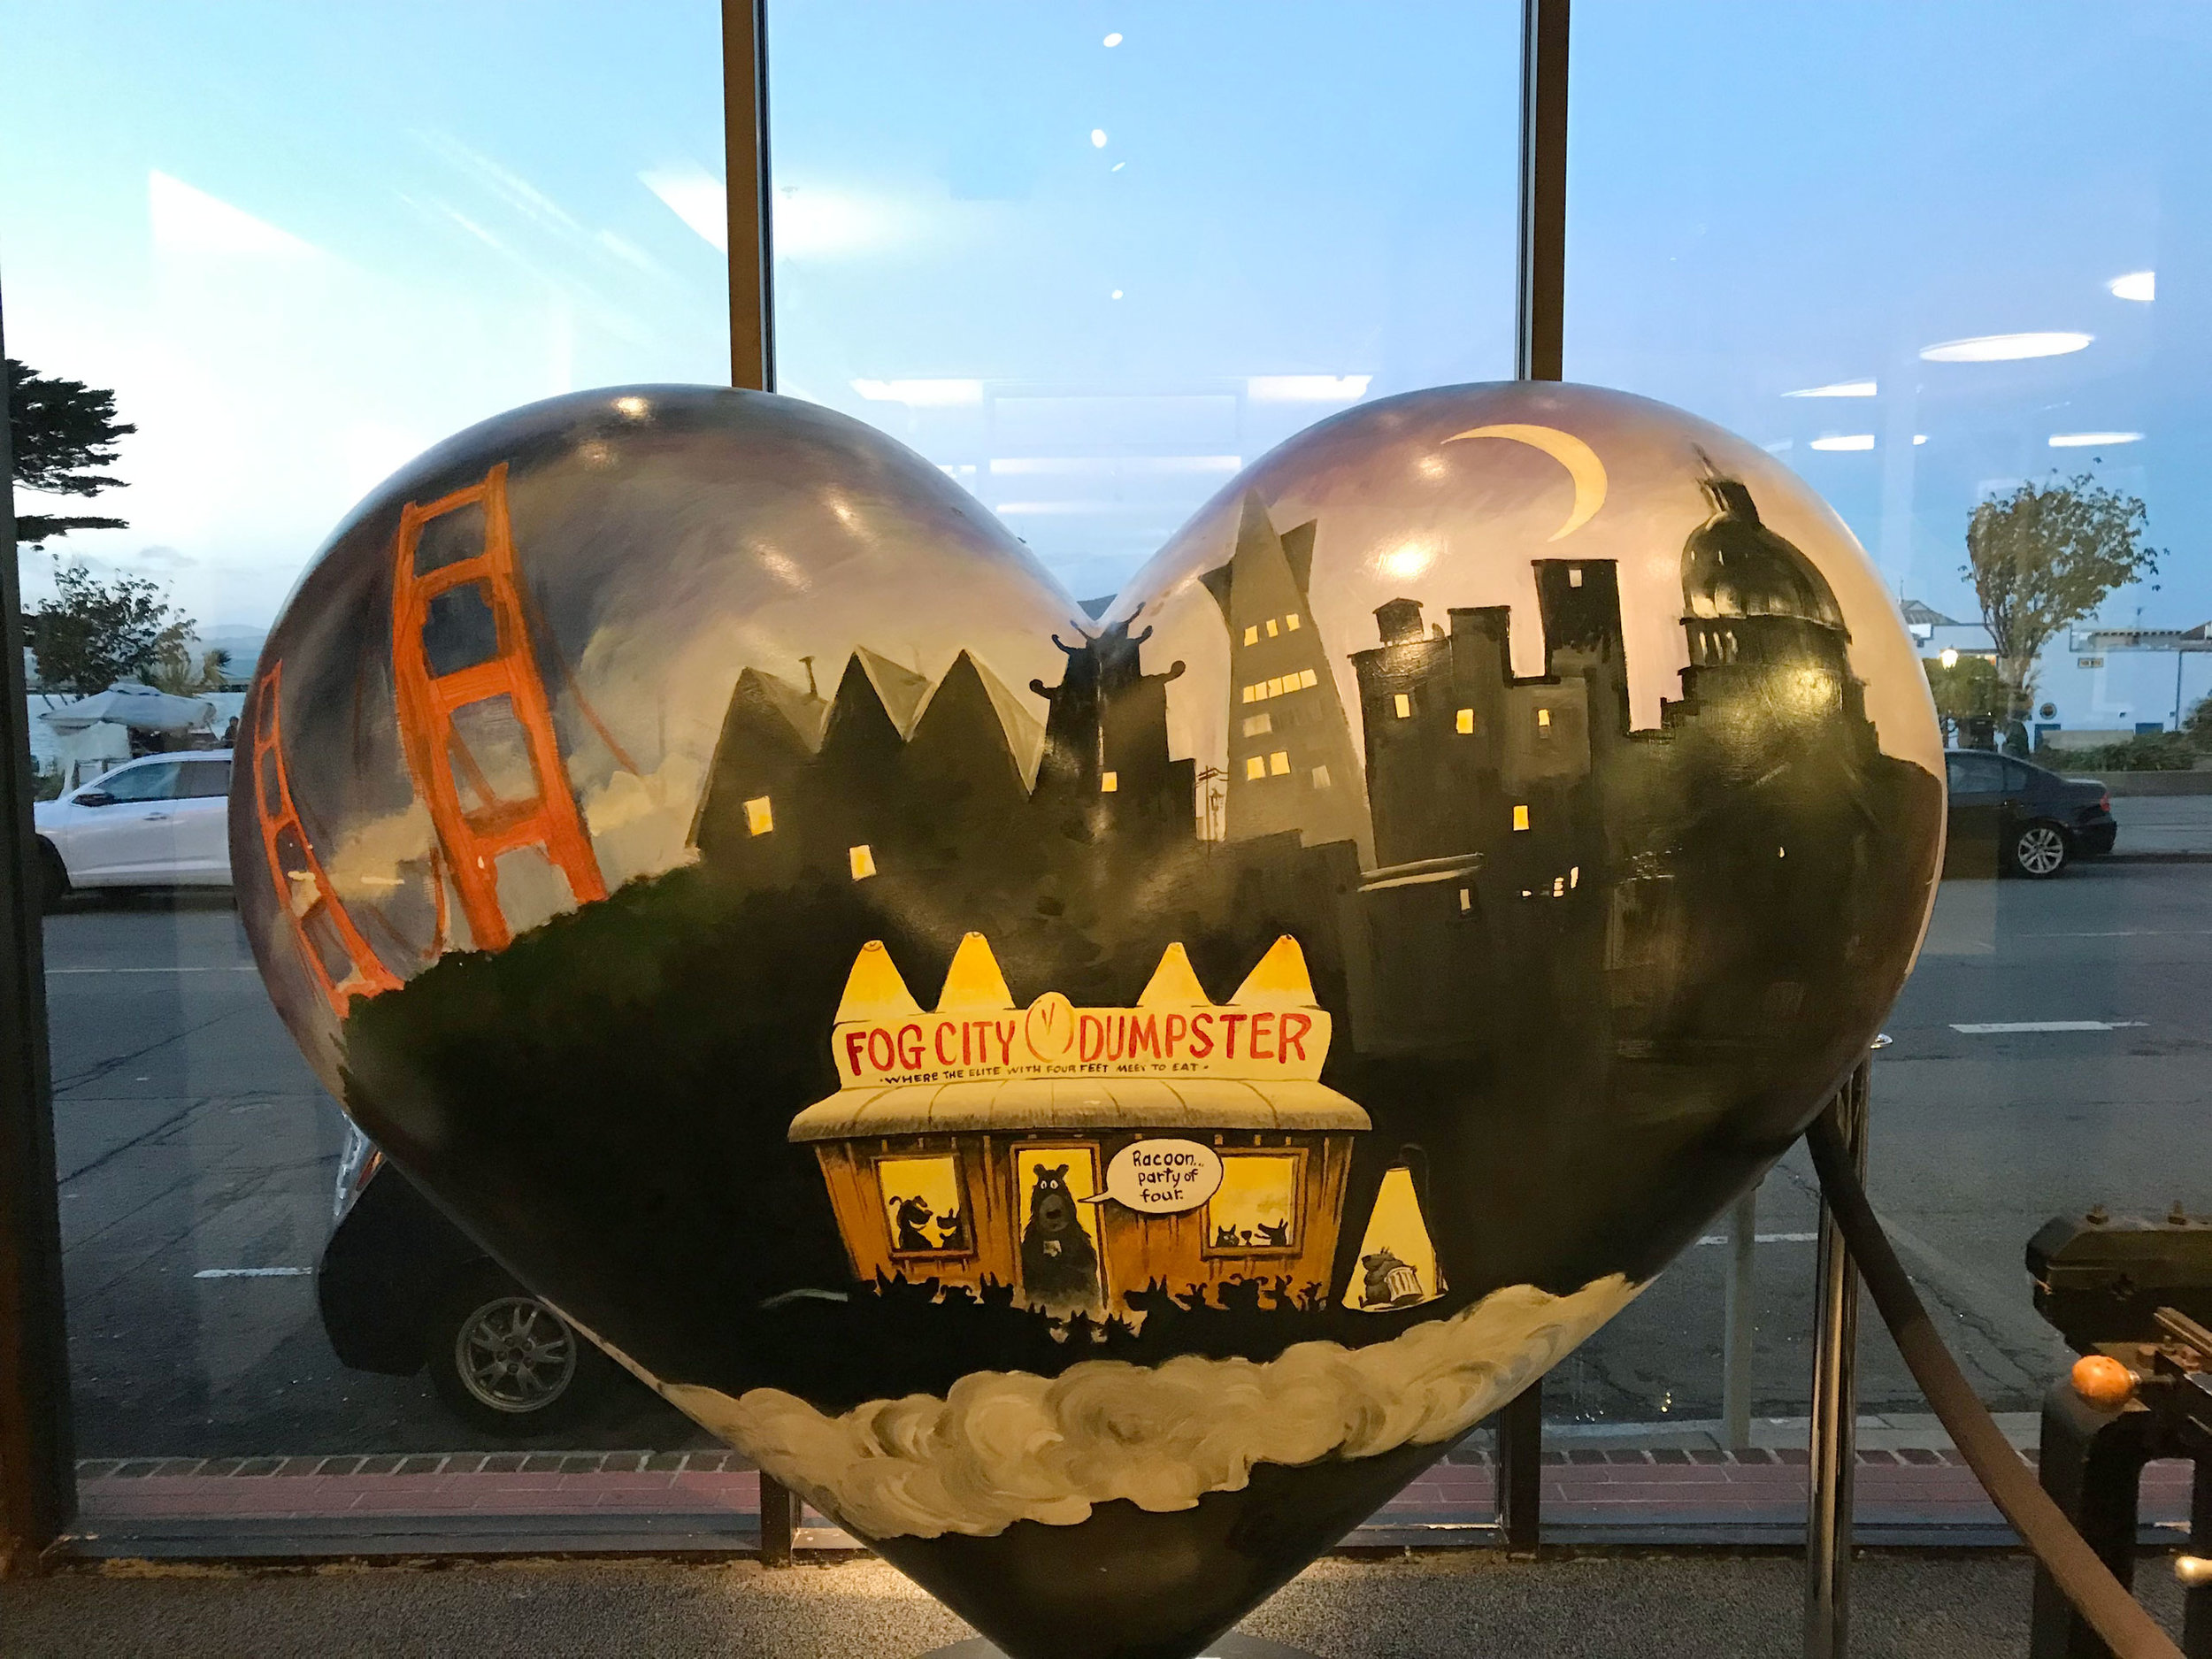 Painted heart sculpture by cartoonist Phil Frank